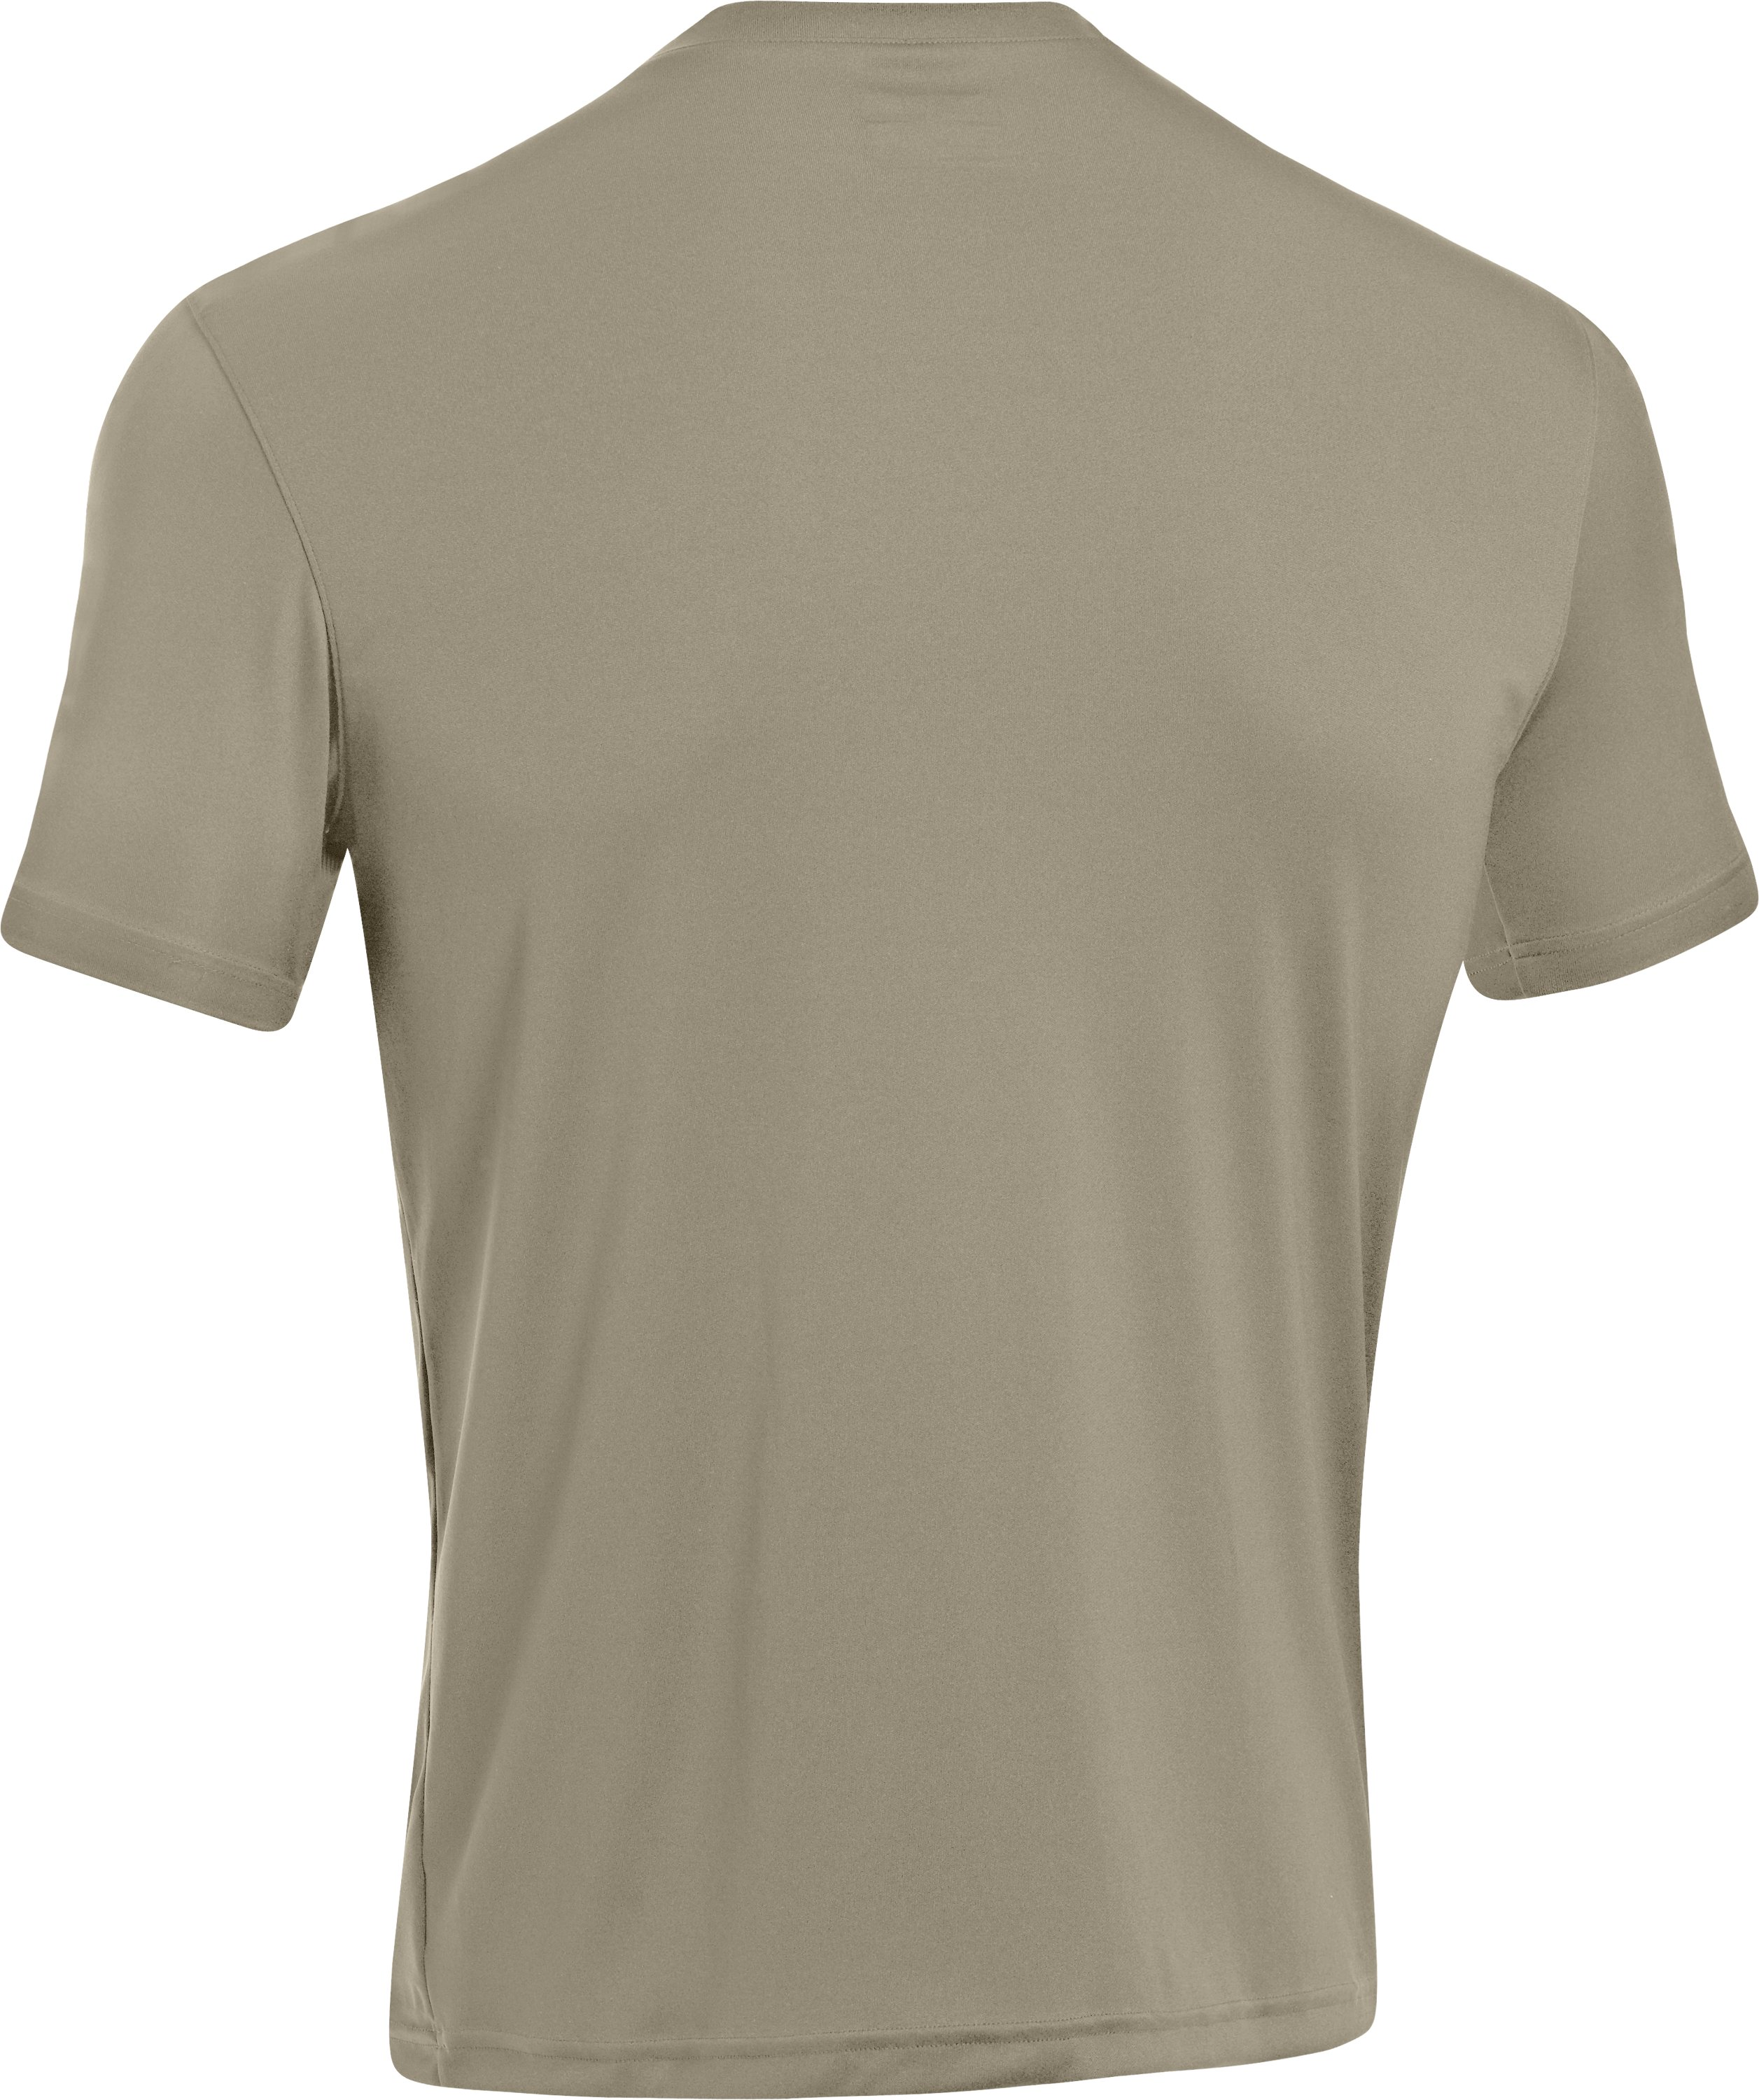 Men's HeatGear® Tactical Short Sleeve T-Shirt, Desert Sand